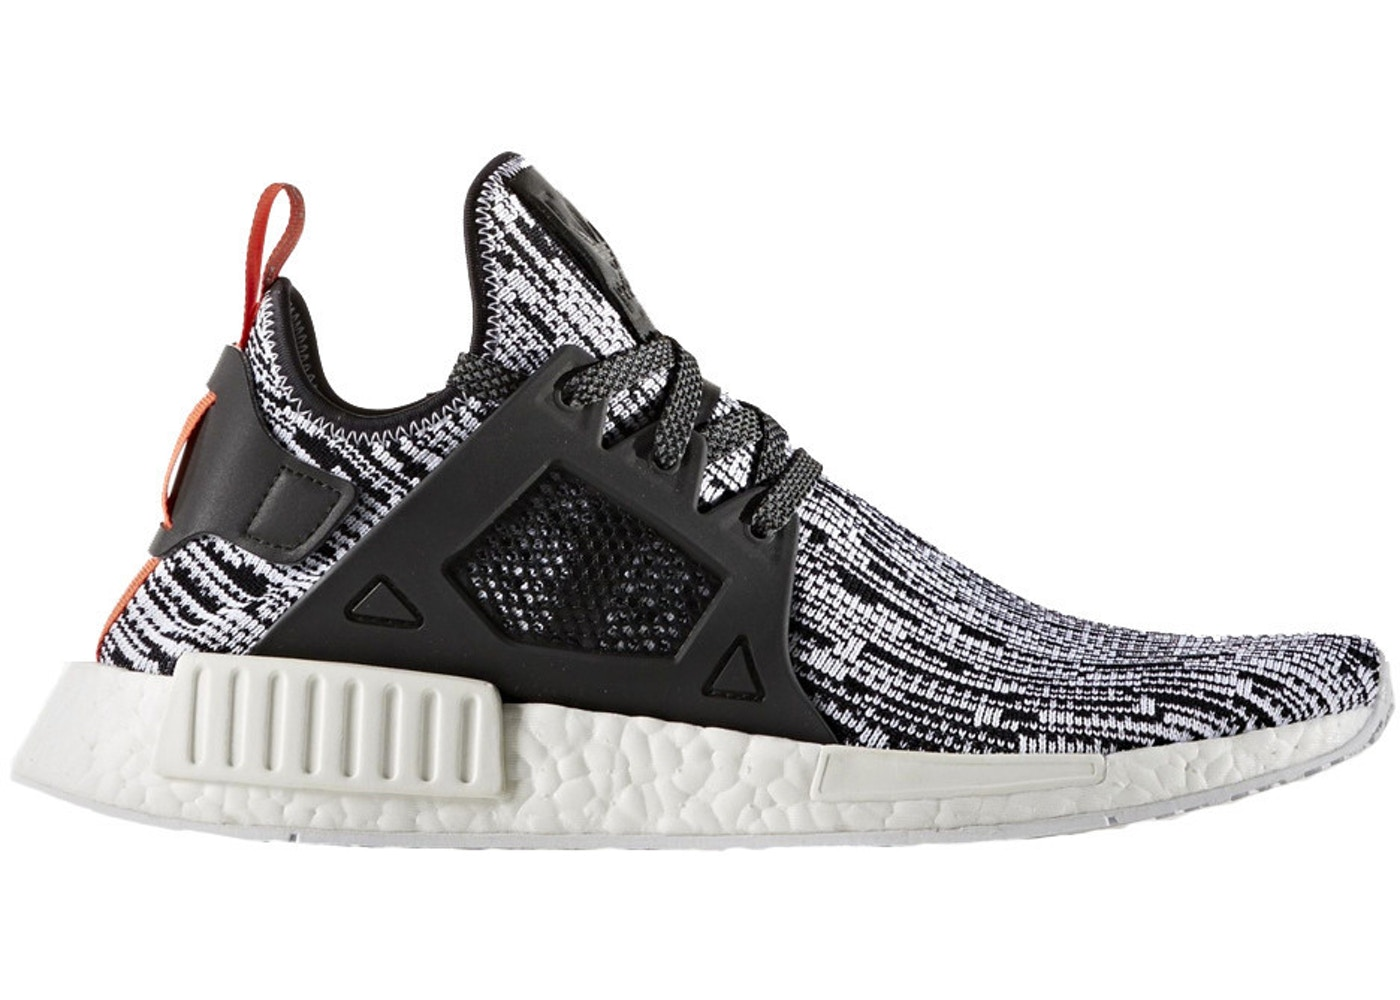 reputable site 420bd 1d14b Buy adidas NMD XR1 Shoes & Deadstock Sneakers